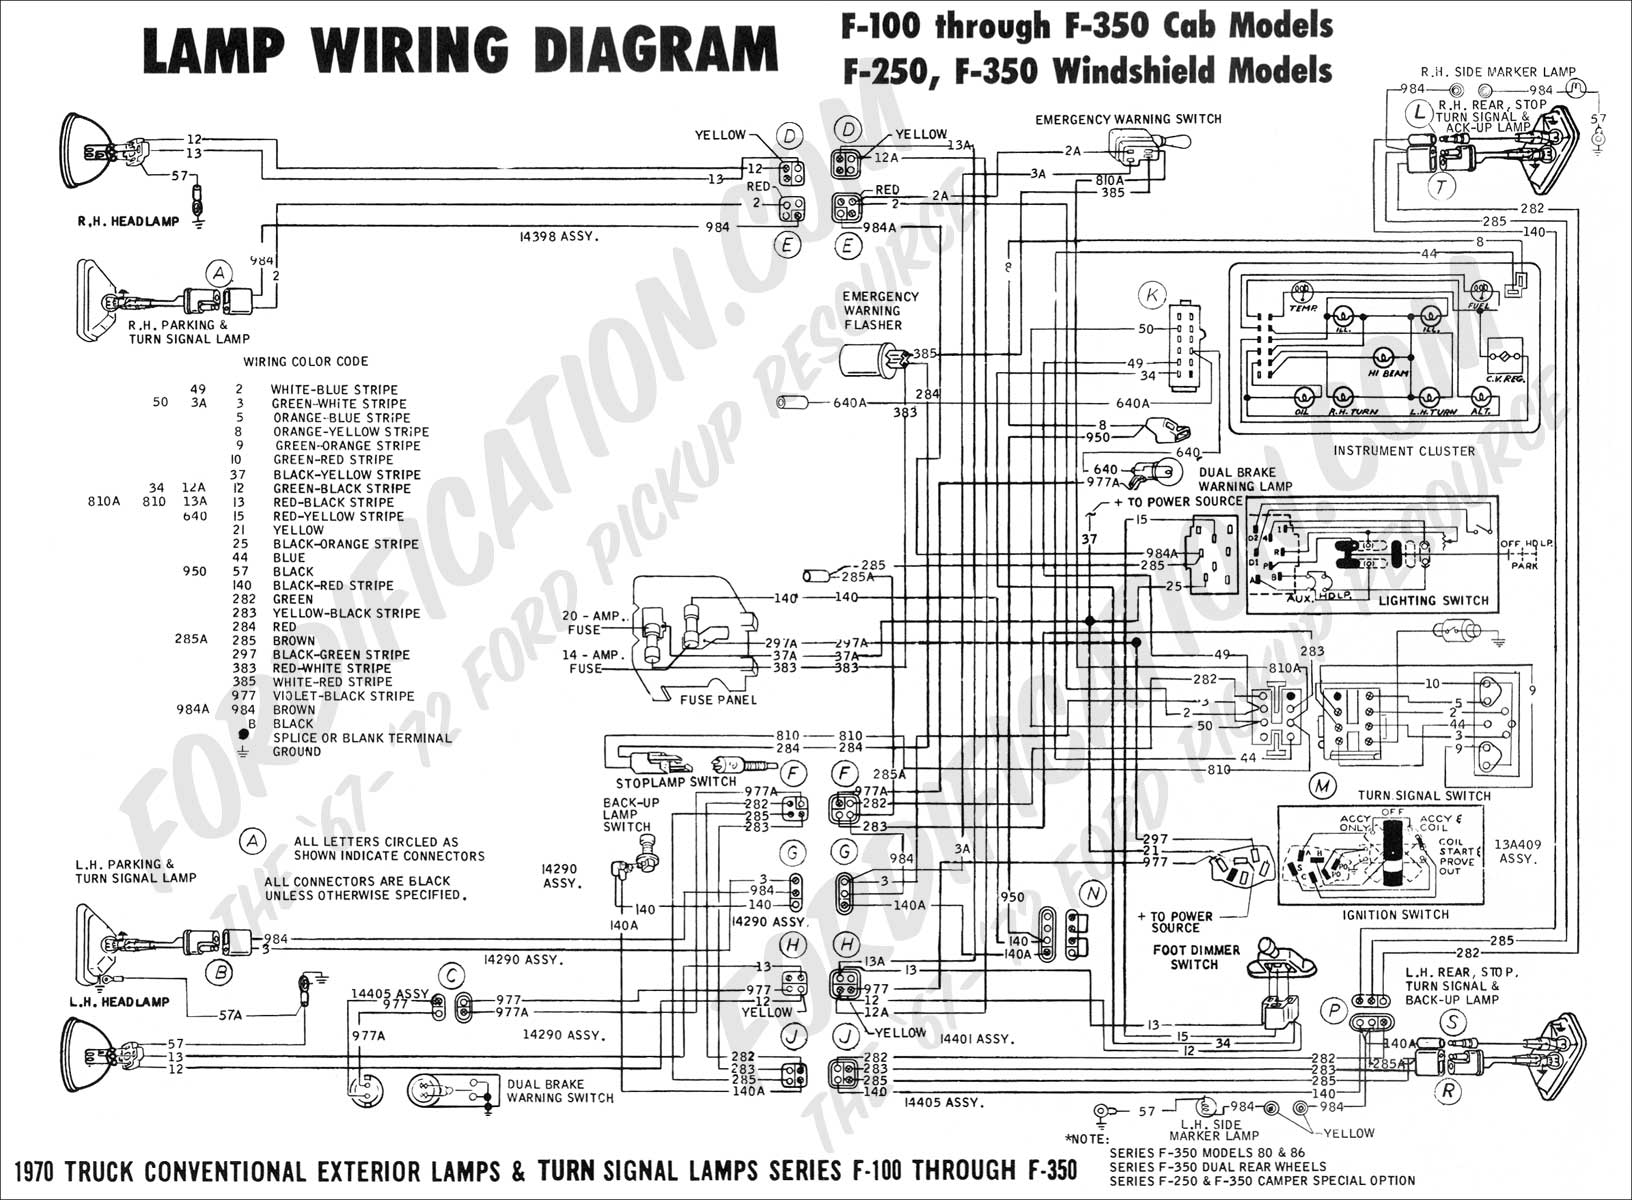 Piping Diagram For Swimming Pool as well Steering Signals Ignition Switch Wiring Diagram Chevy Flashing Flashers Locking Colors Code Ex les Photos Collections Ex likewise Ignition Switch Wiring Diagram Chevy together with Chevrolet Camaro 2 5 1986 Specs And Images likewise 554634 Wiring Fog Lights Through. on 69 camaro wiring diagram